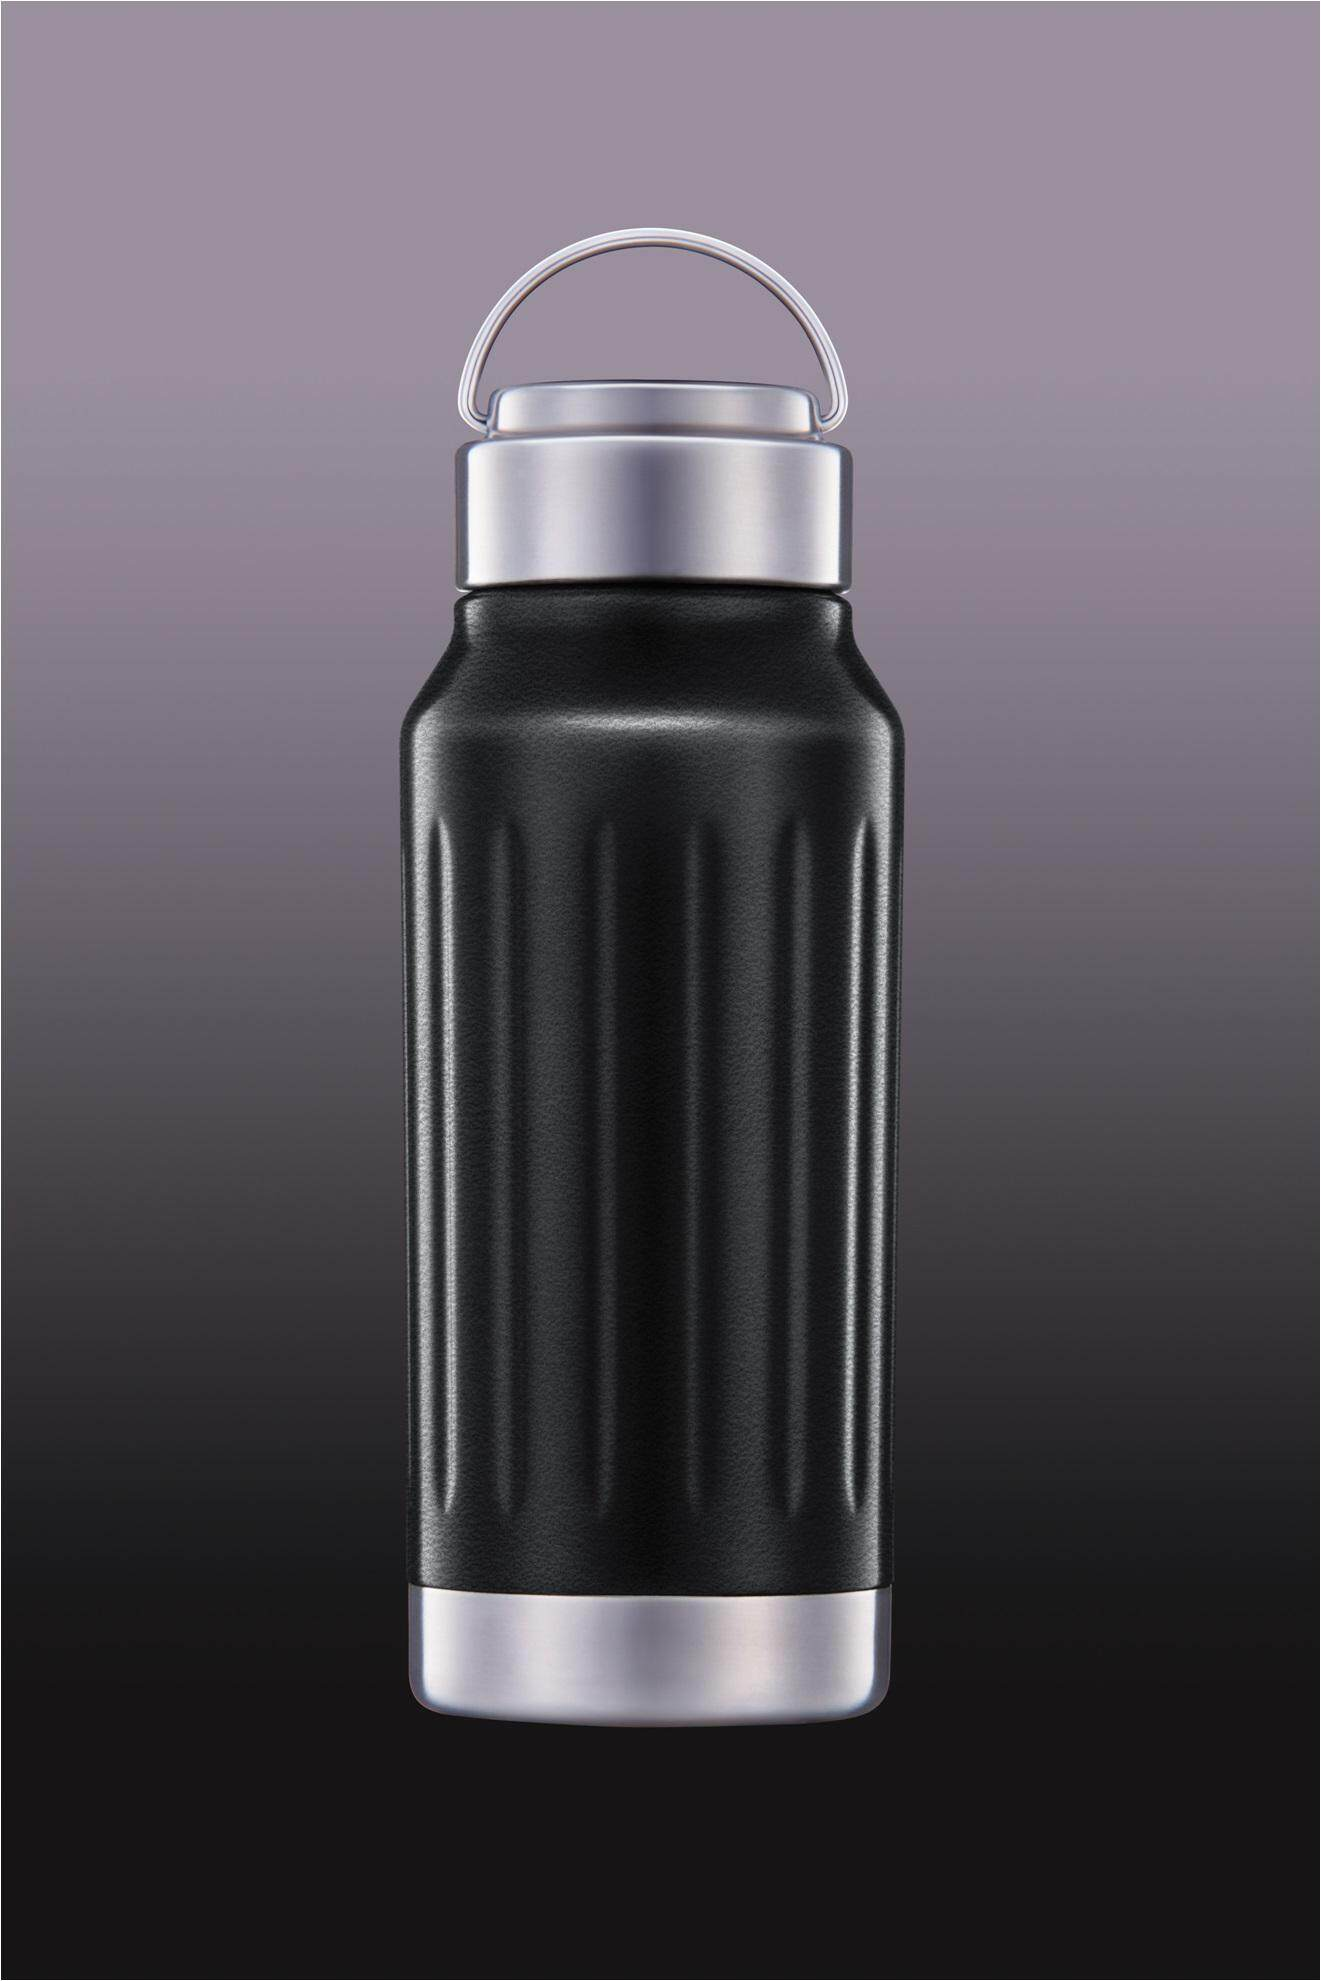 [LIVE] VAKKUM LIMITED EDITION ANTI-BACTERIAL VACCUM FLASK(SPORT BOTTLE) 500ml